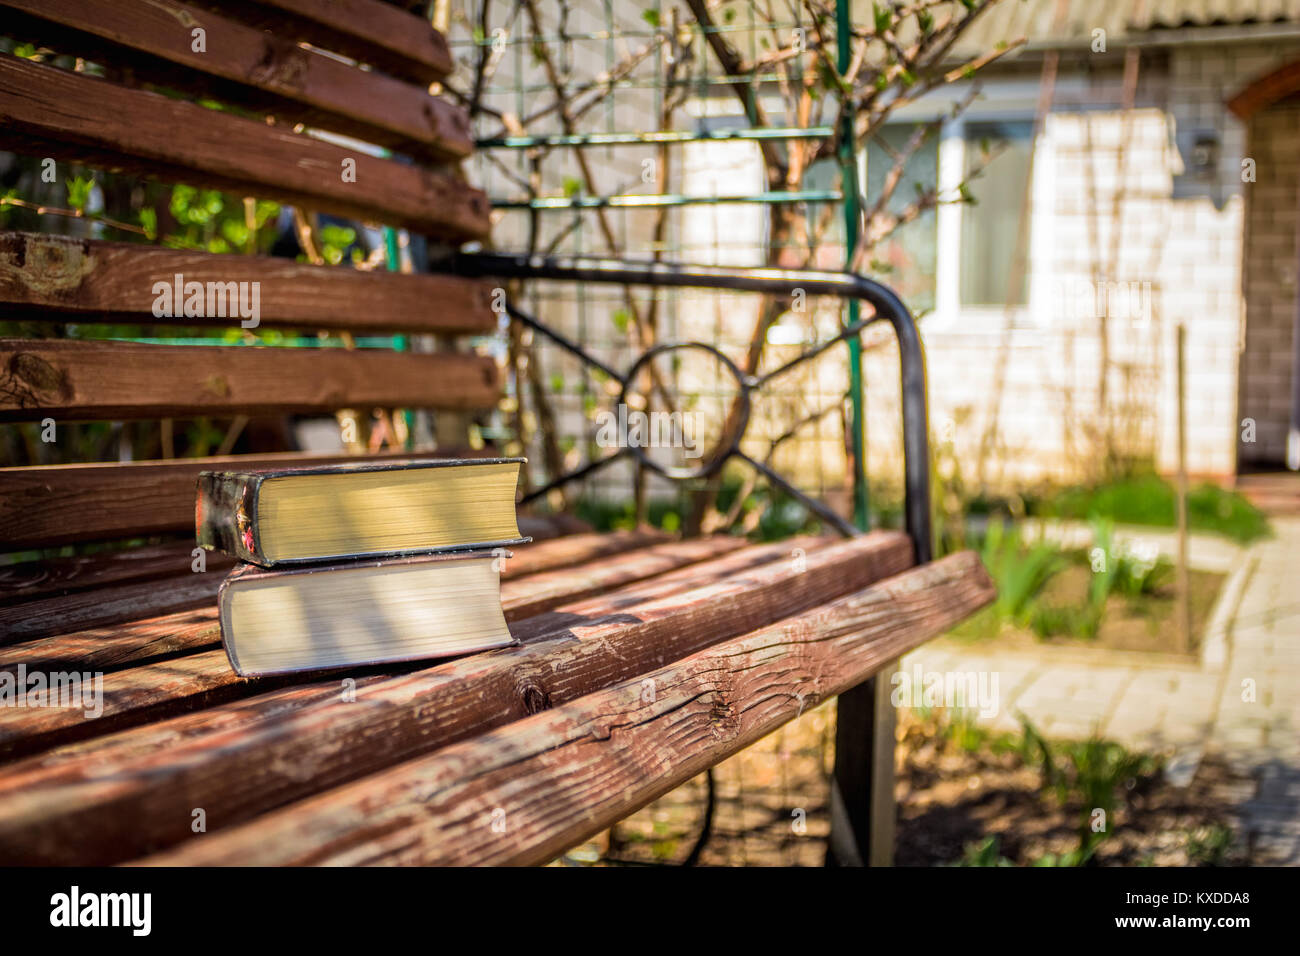 Two books lying on a wooden bench in the bright spring sunny day - Stock Image